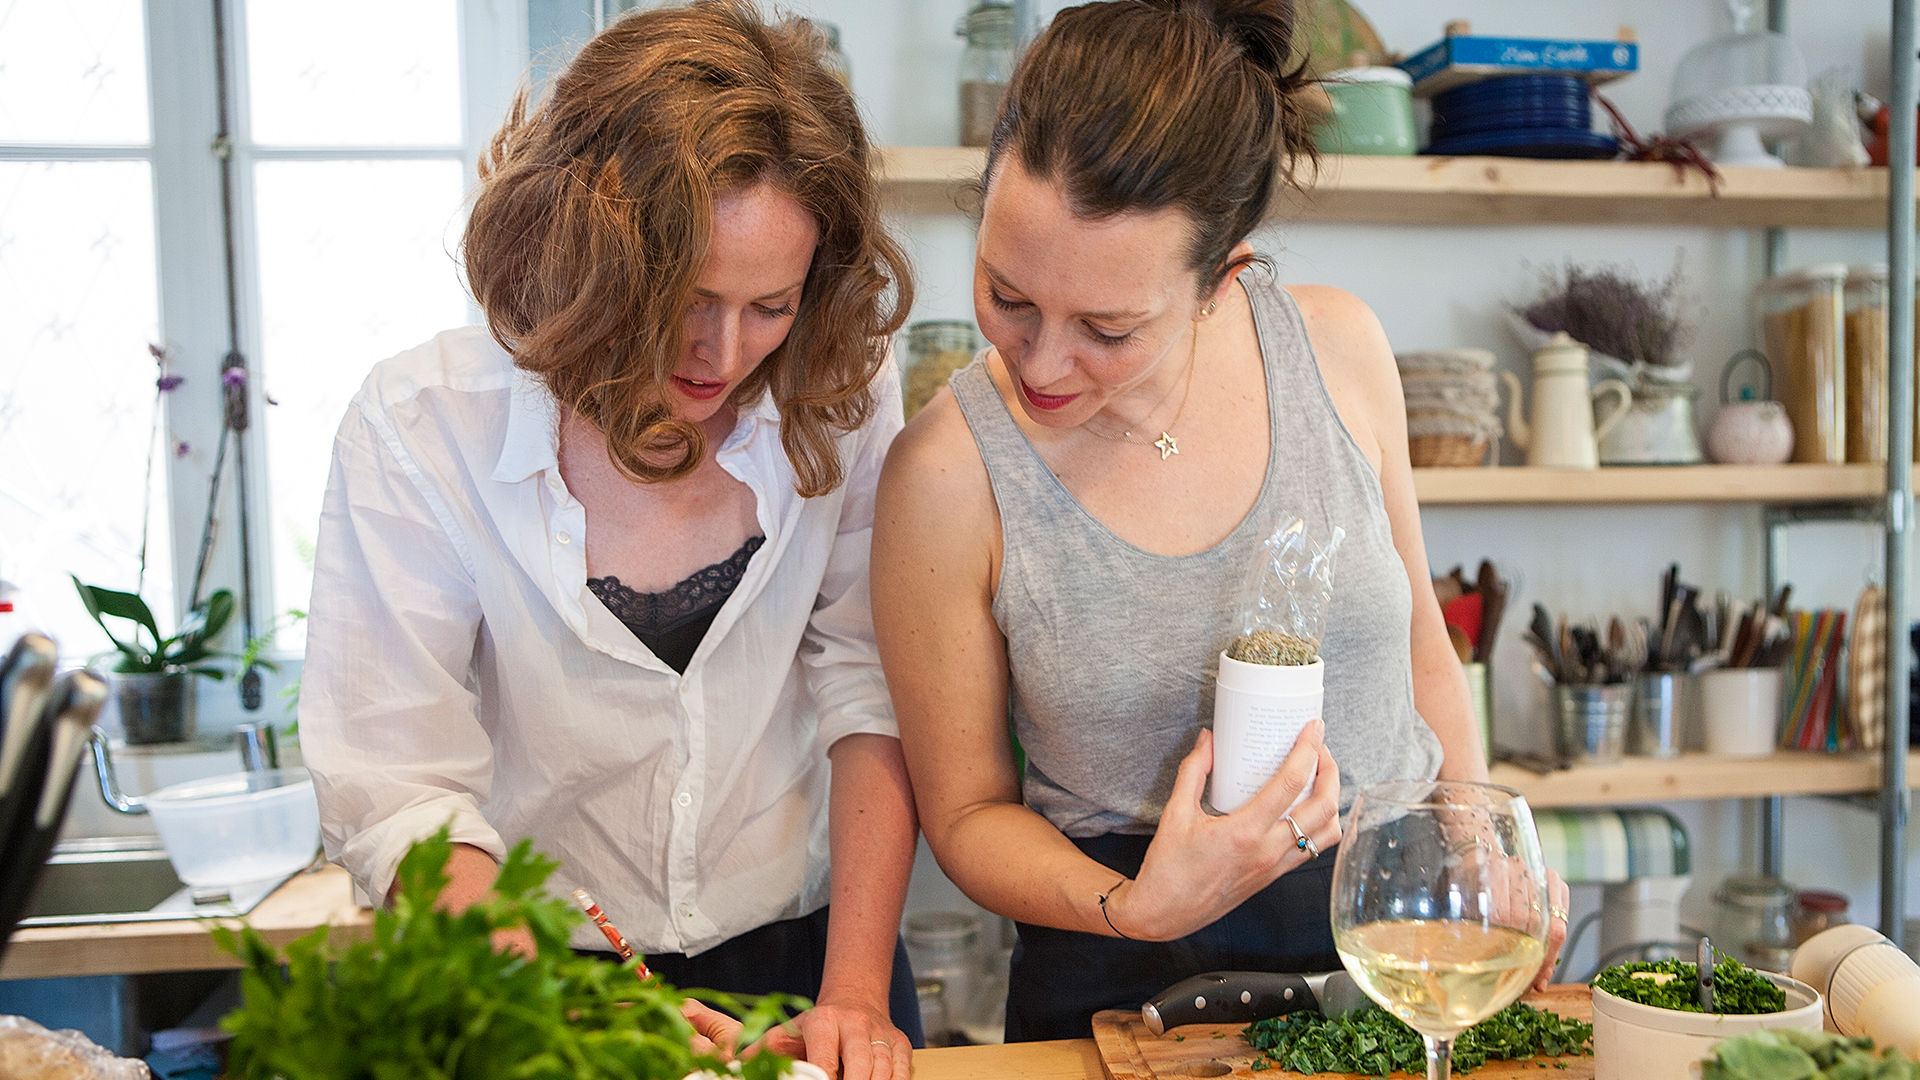 Alanna-Lawley-from-Foodadit-and-Alison-Beckner-from-Scout-Consulting-with-herbs-and-spices-from-Daphnis-and-Chloe